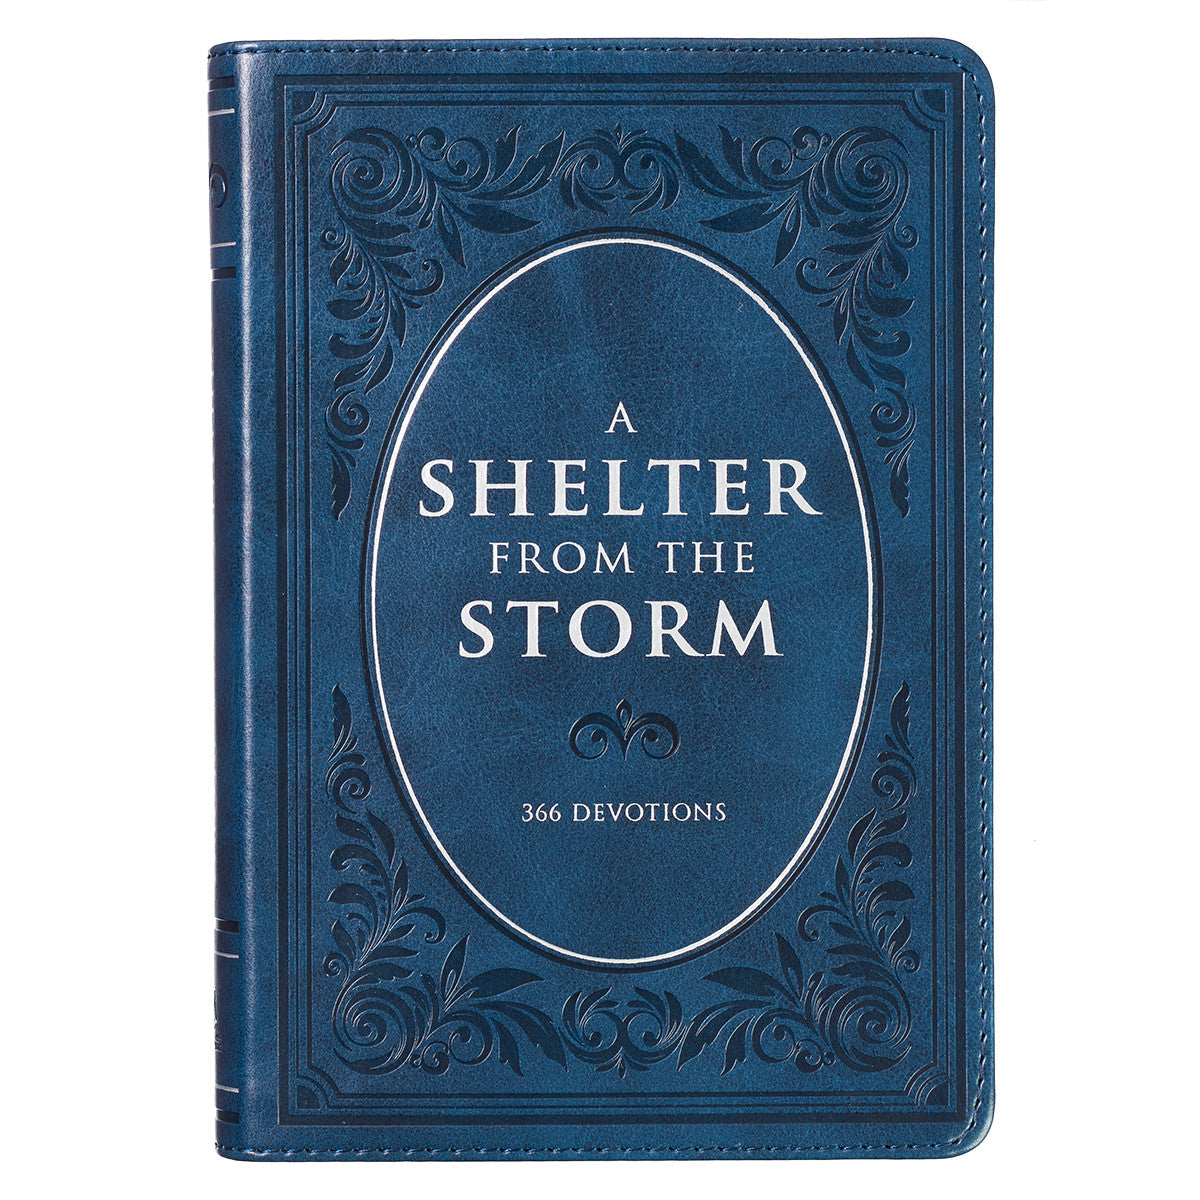 ROCKONLINE | New Creation Church | NCC | Joseph Prince | ROCK Bookshop | ROCK Bookstore | Star Vista | Devotionals | Prayers | Promises | Women | A Shelter From the Storm | Free delivery for Singapore Orders above $50.